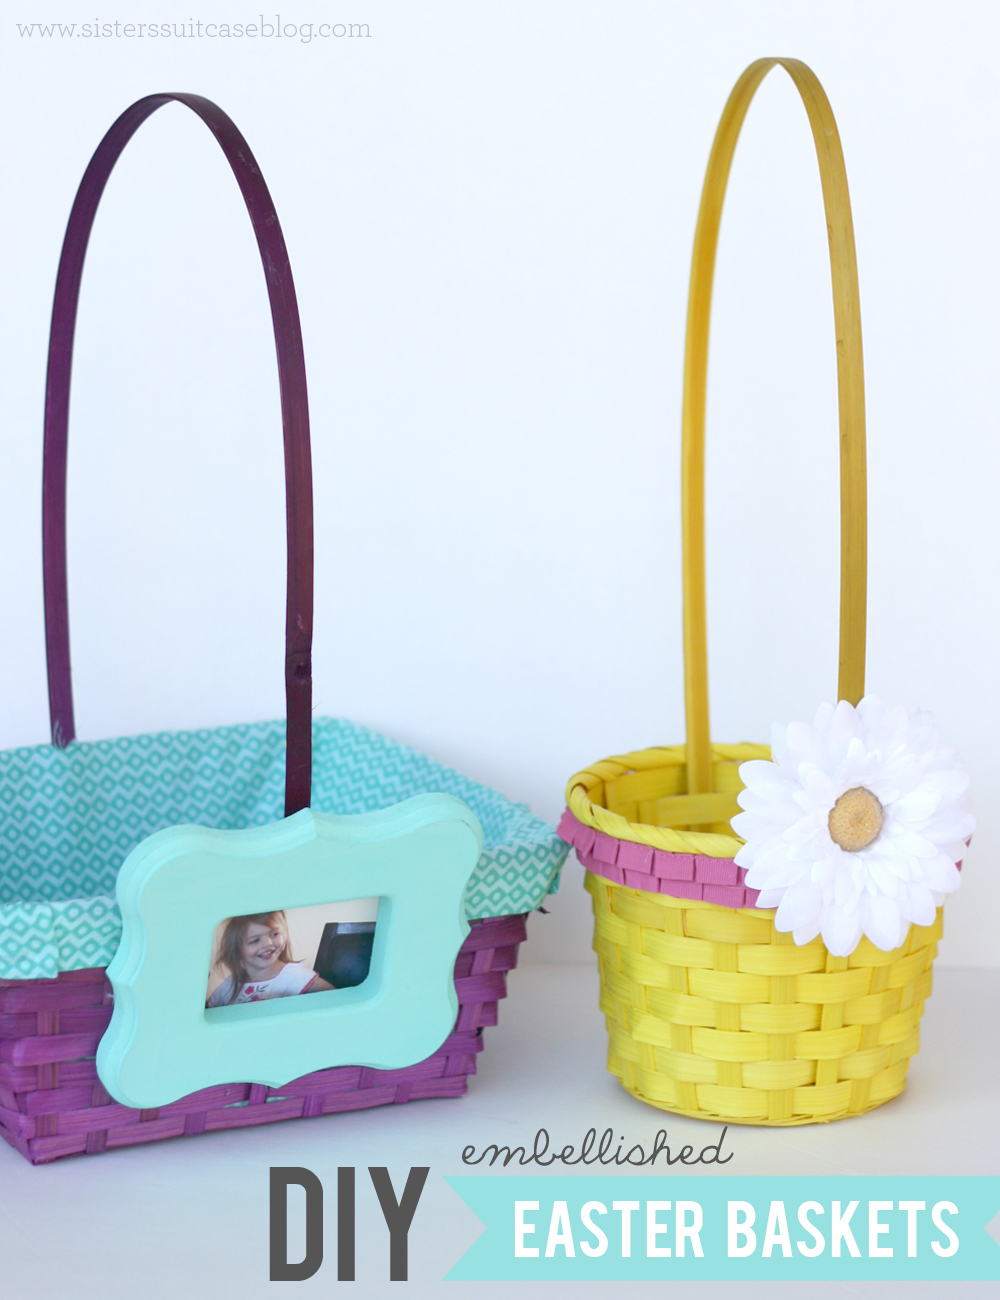 Diy embellished easter baskets my sisters suitcase packed today im sharing ideas on how to decorate those plain inexpensive easter baskets and turn them into something much more festive and beautiful negle Images